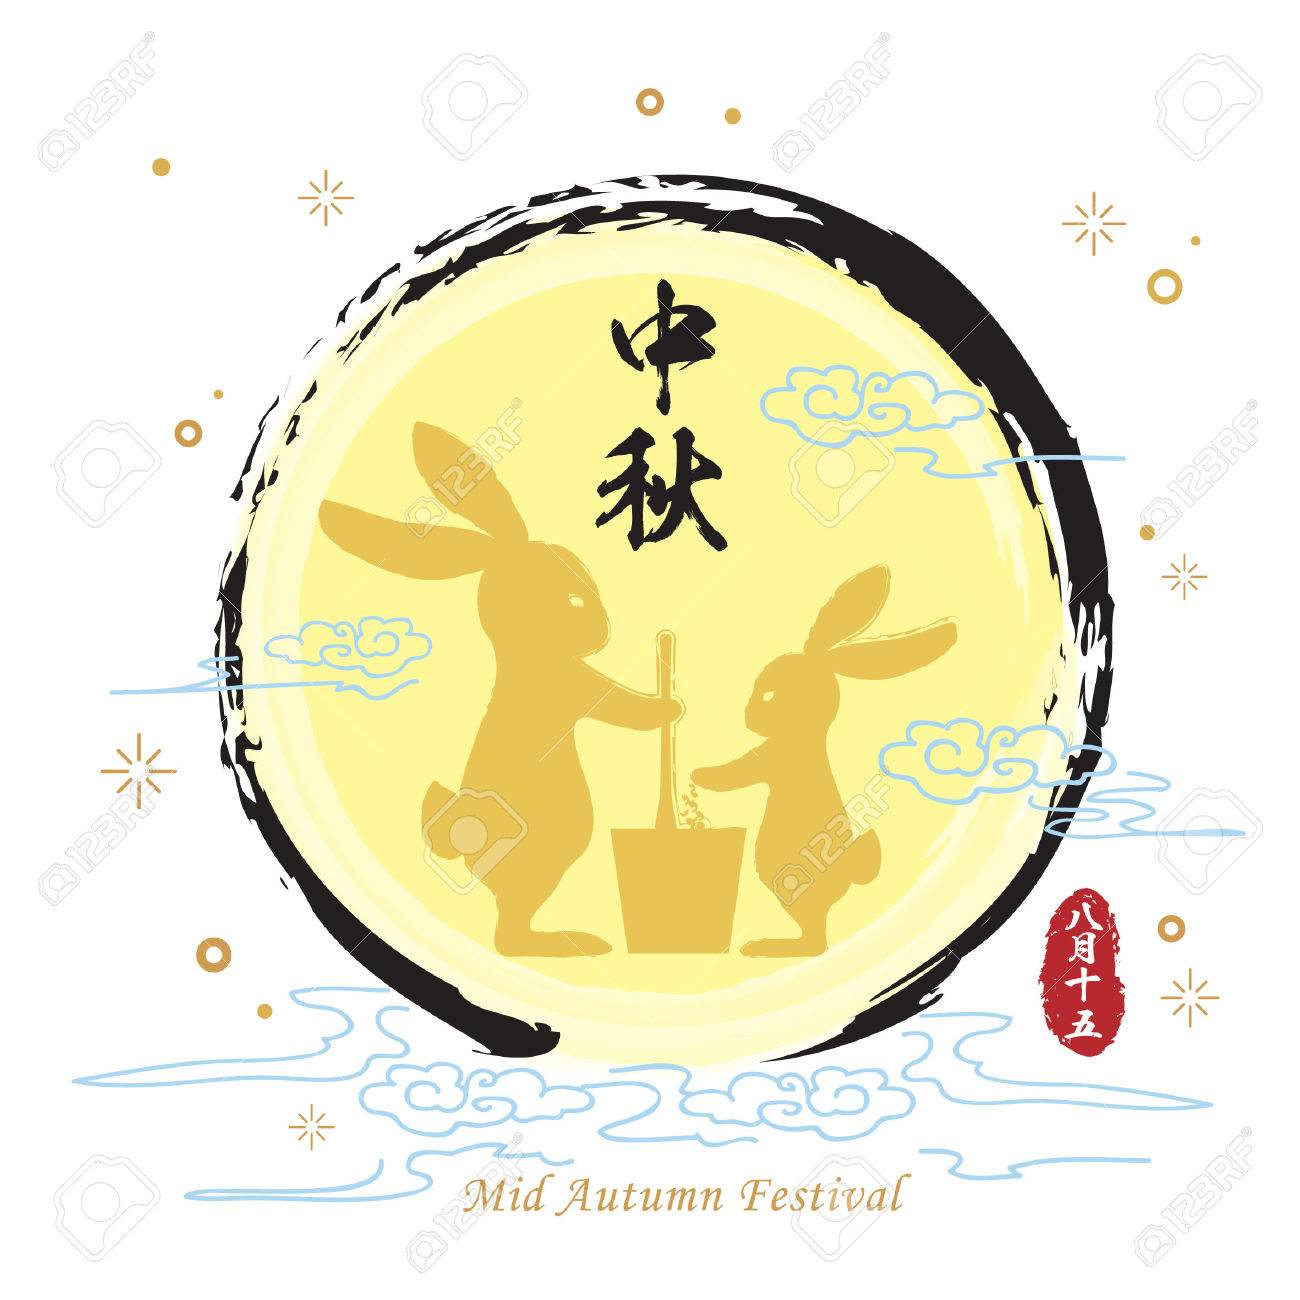 Mid autumn festival greeting with hand drawn full moon and bunny mid autumn festival greeting with hand drawn full moon and bunny silhouette on starry background m4hsunfo